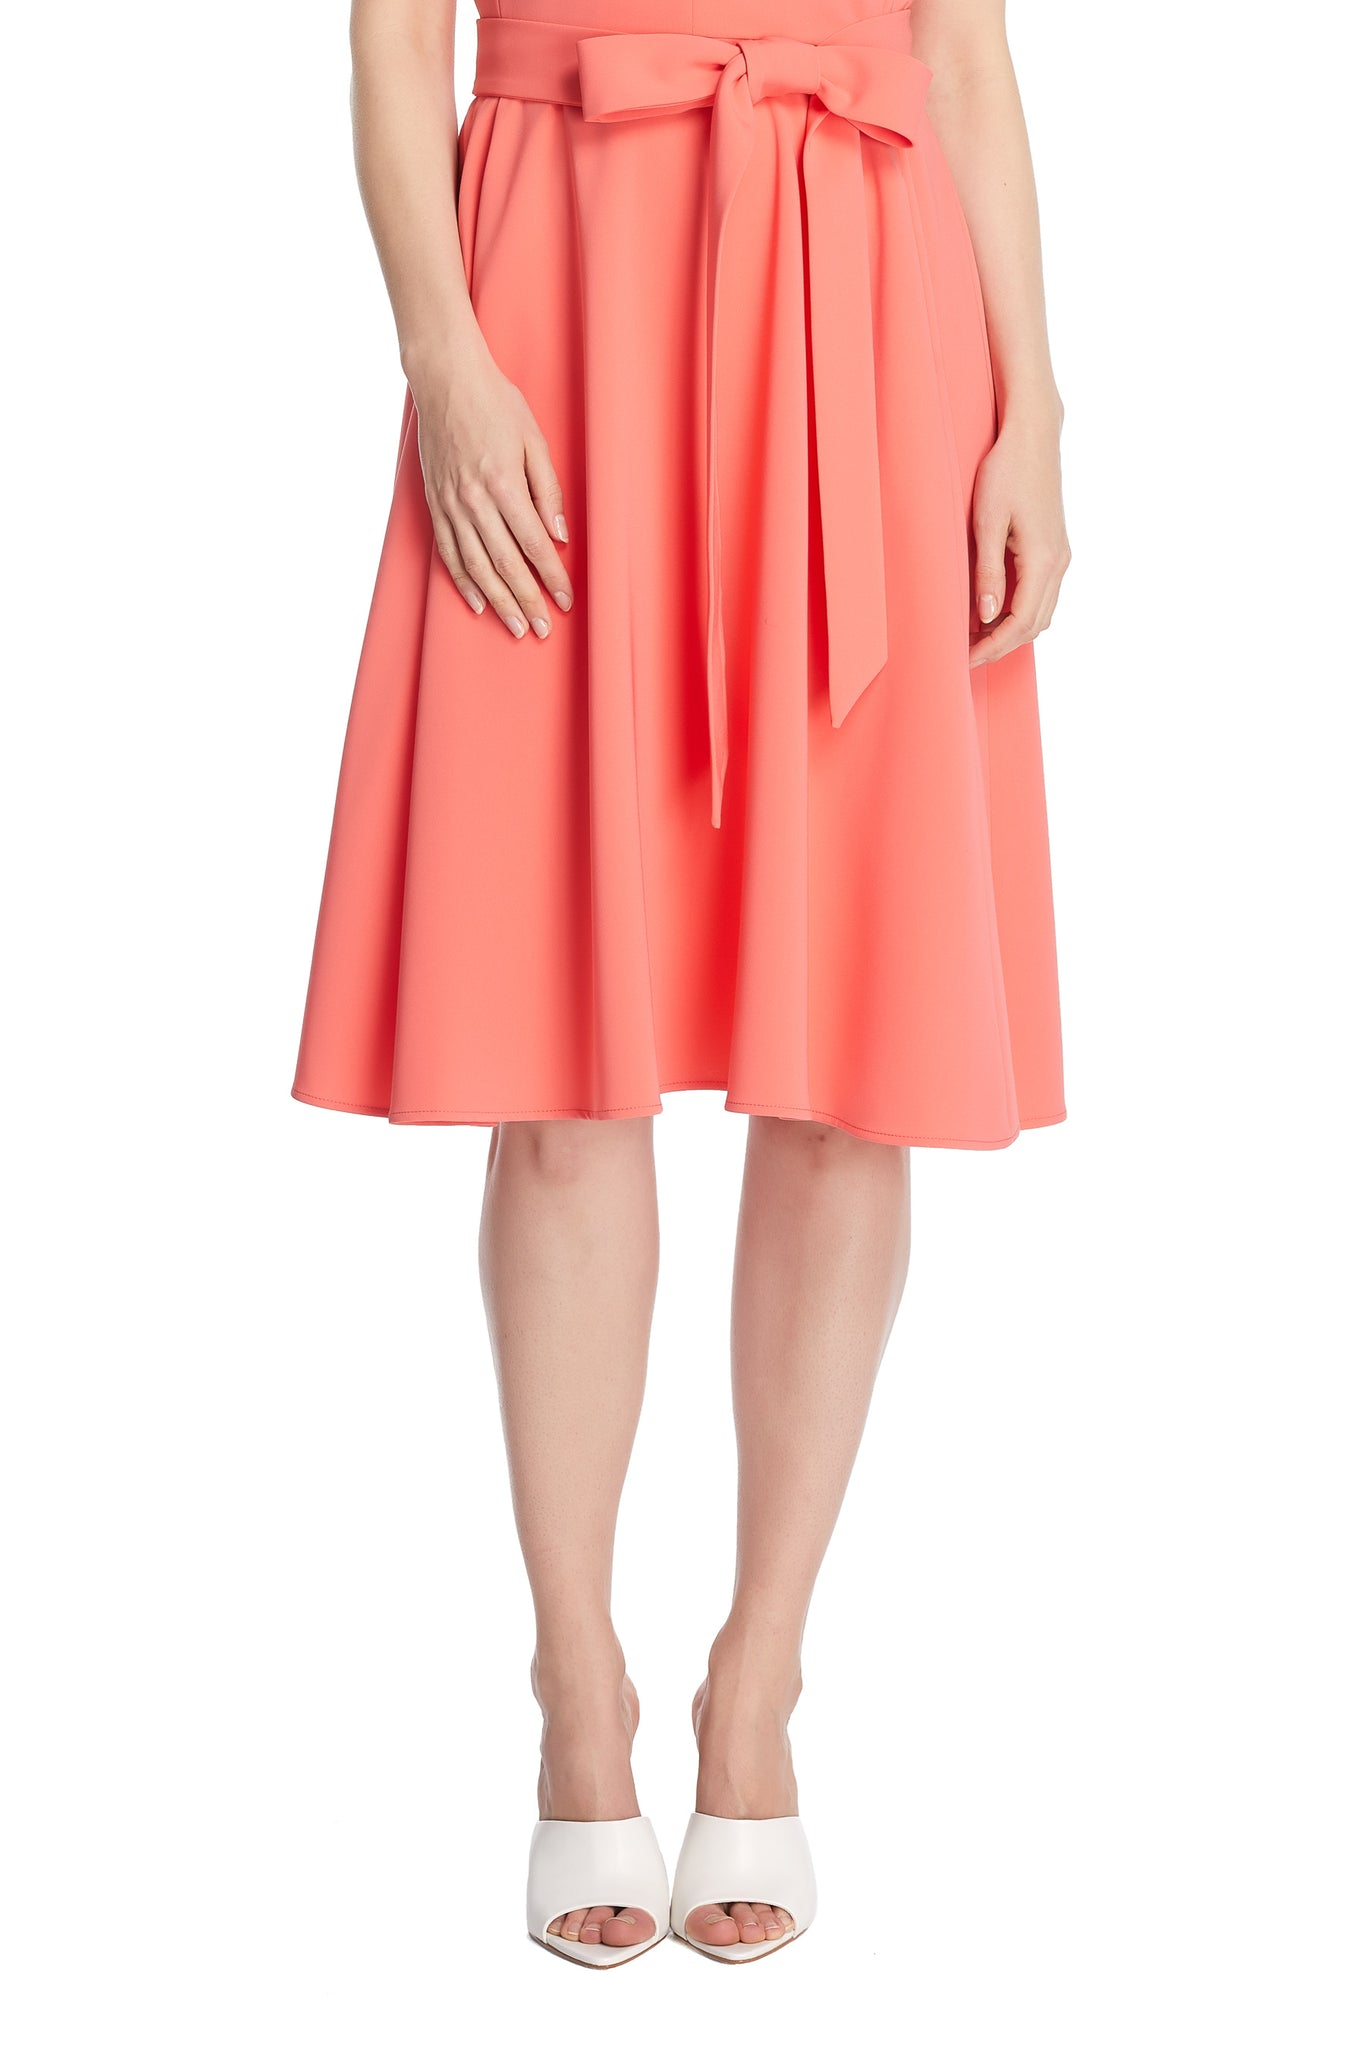 Meg Dress | Robe Meg